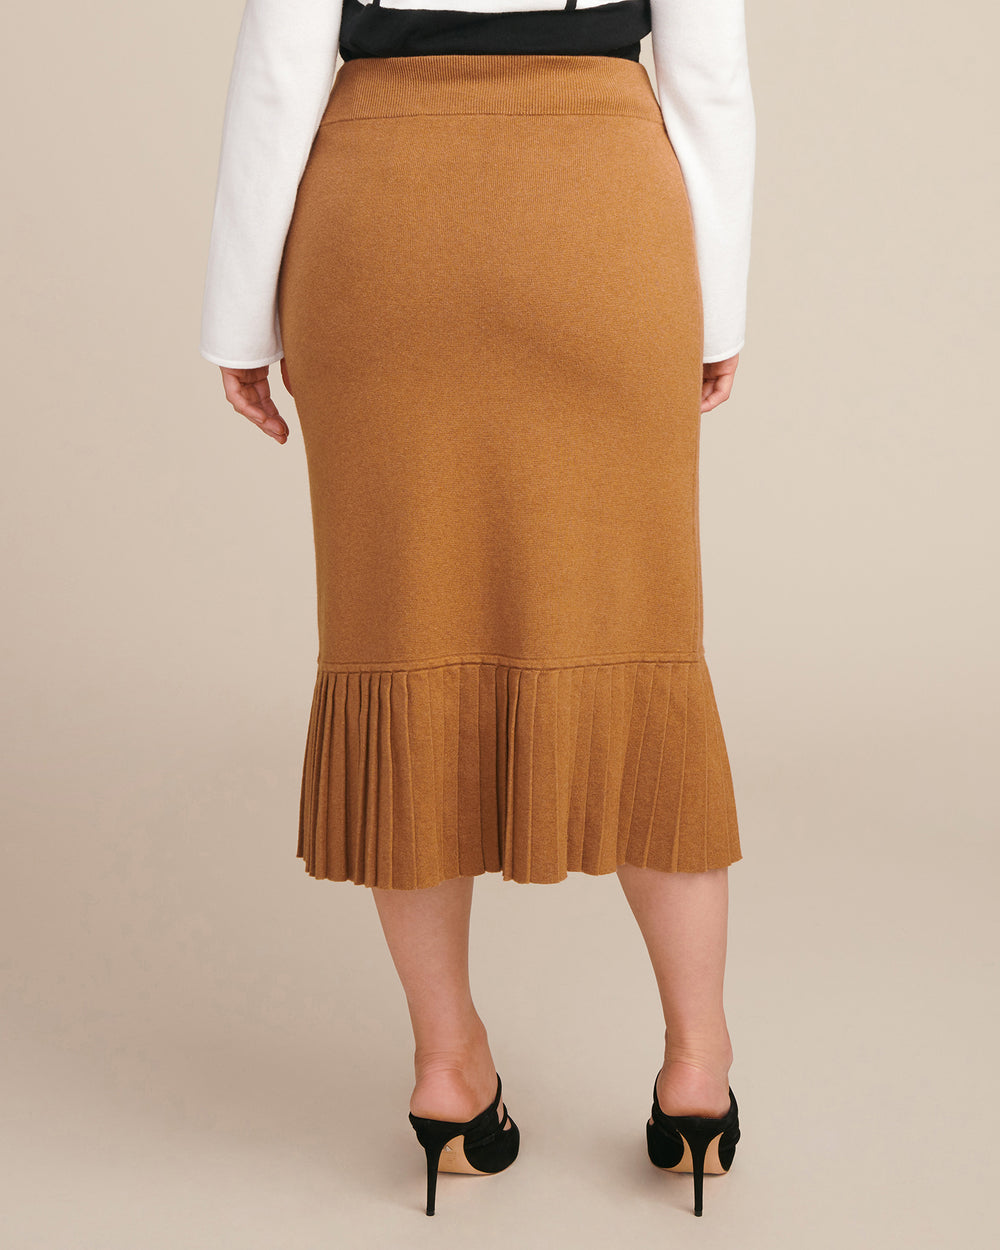 Double Knit Skirt with Pleats